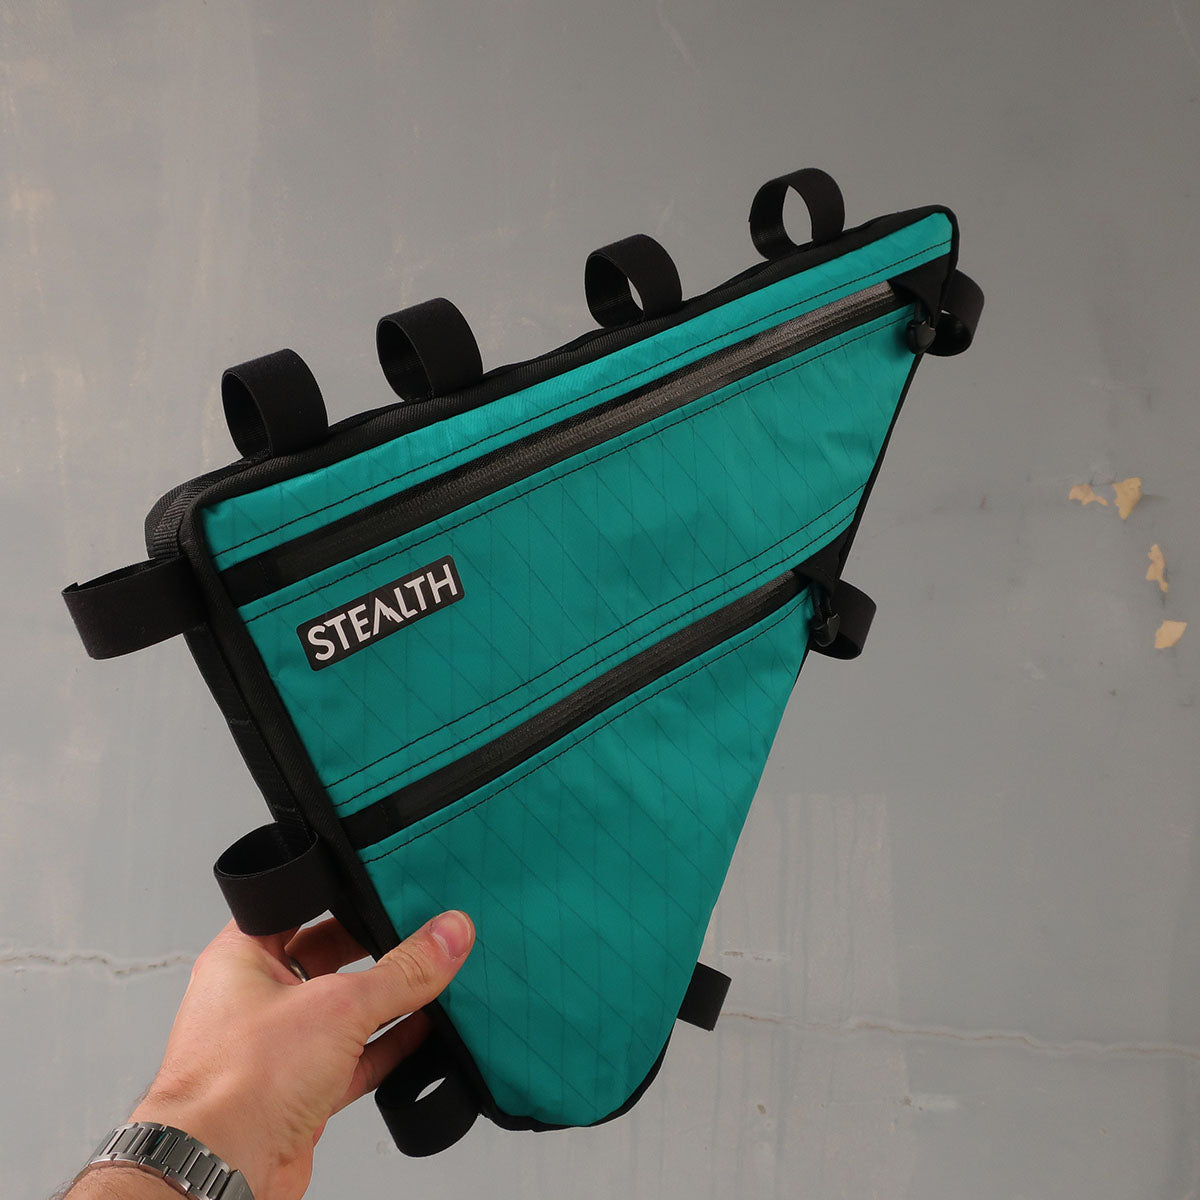 Teal X-pac frame bag for bikepacking